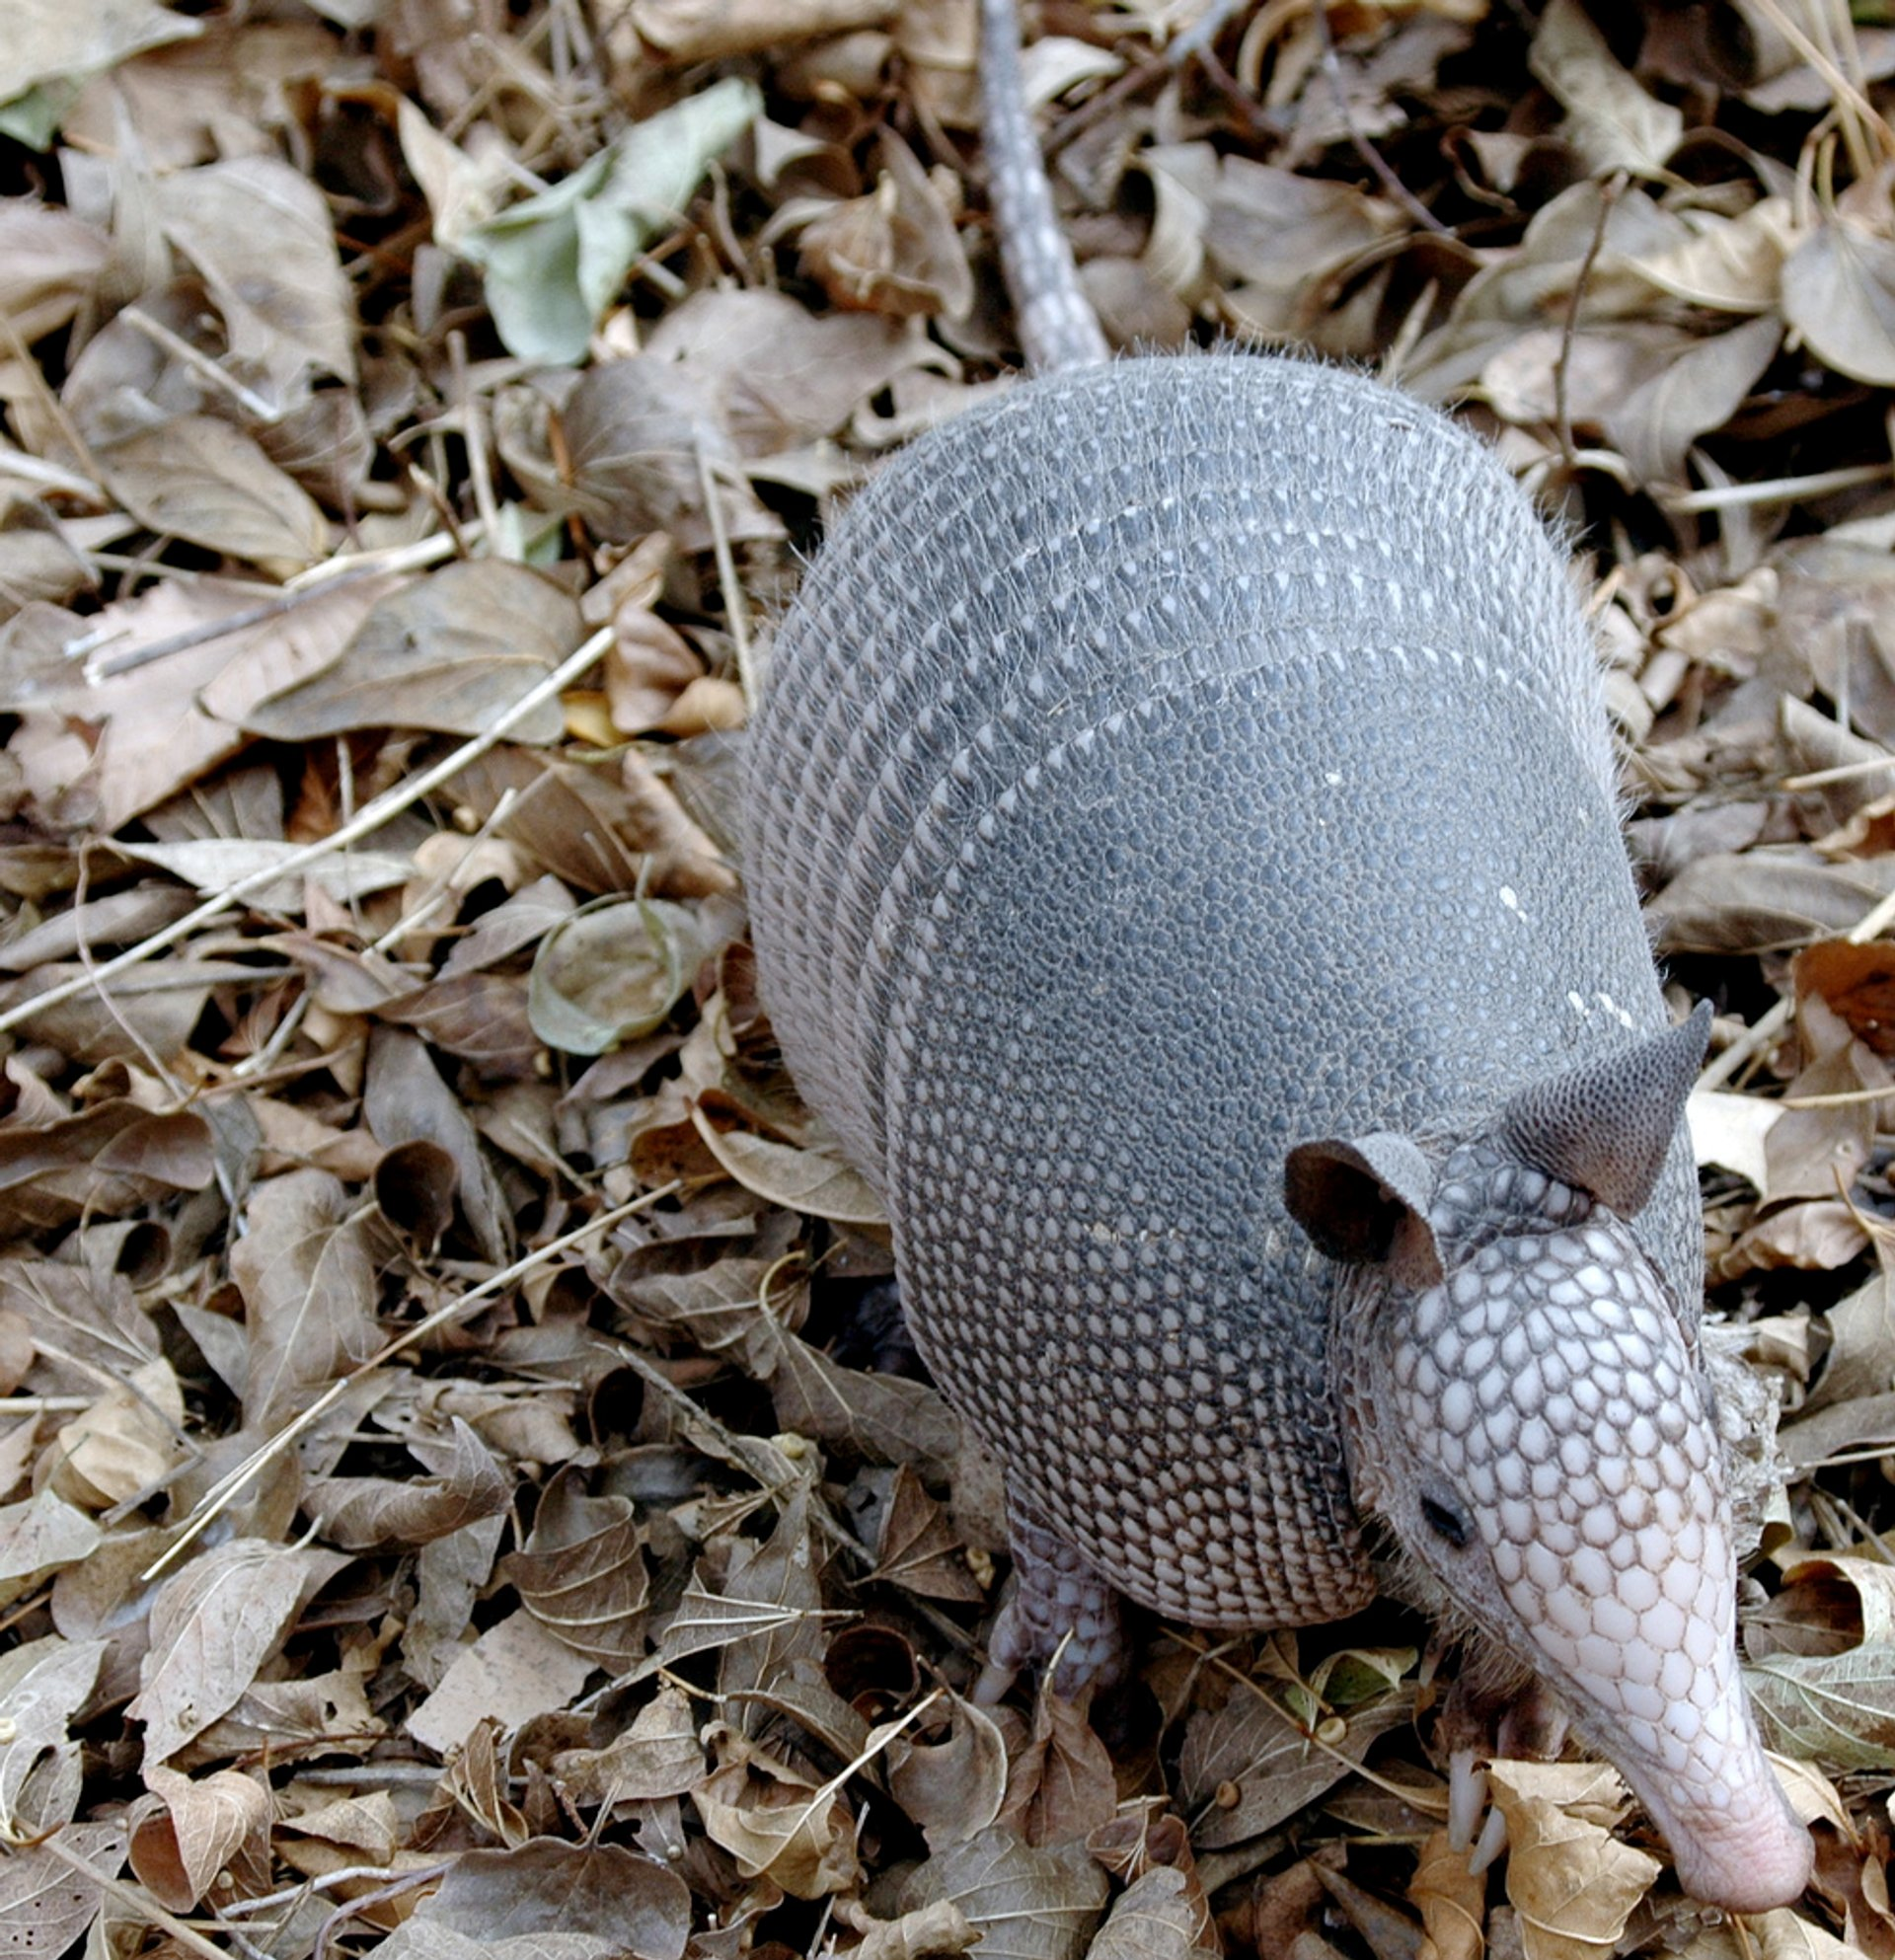 Armadillo at Greenbelt Trail, Denton, TX 2020